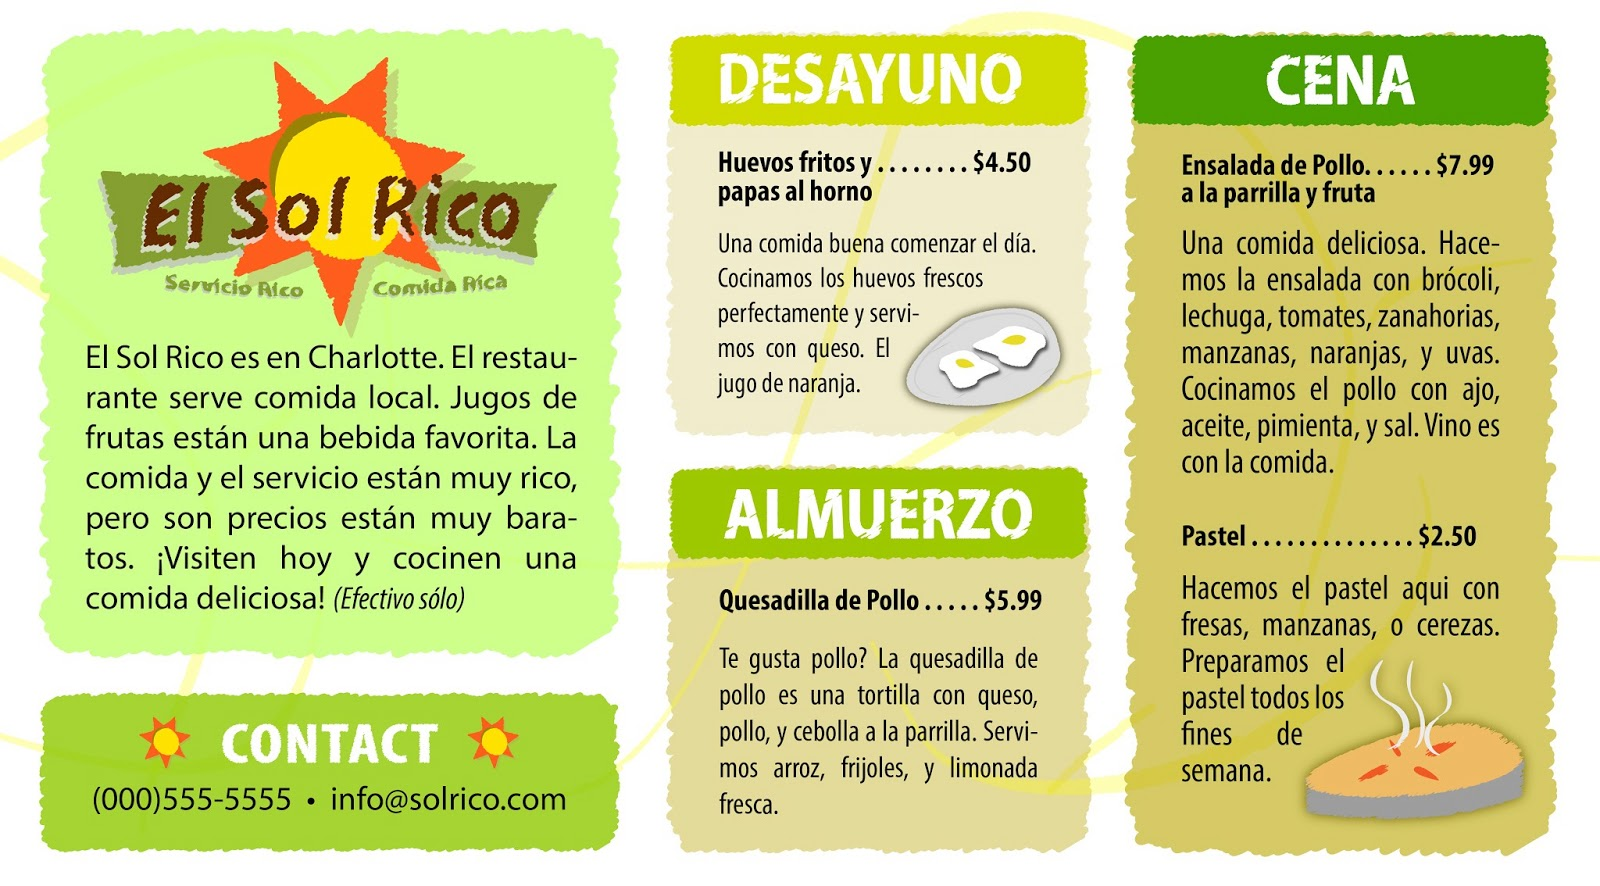 Restaurant Menus In Spanish Language Images